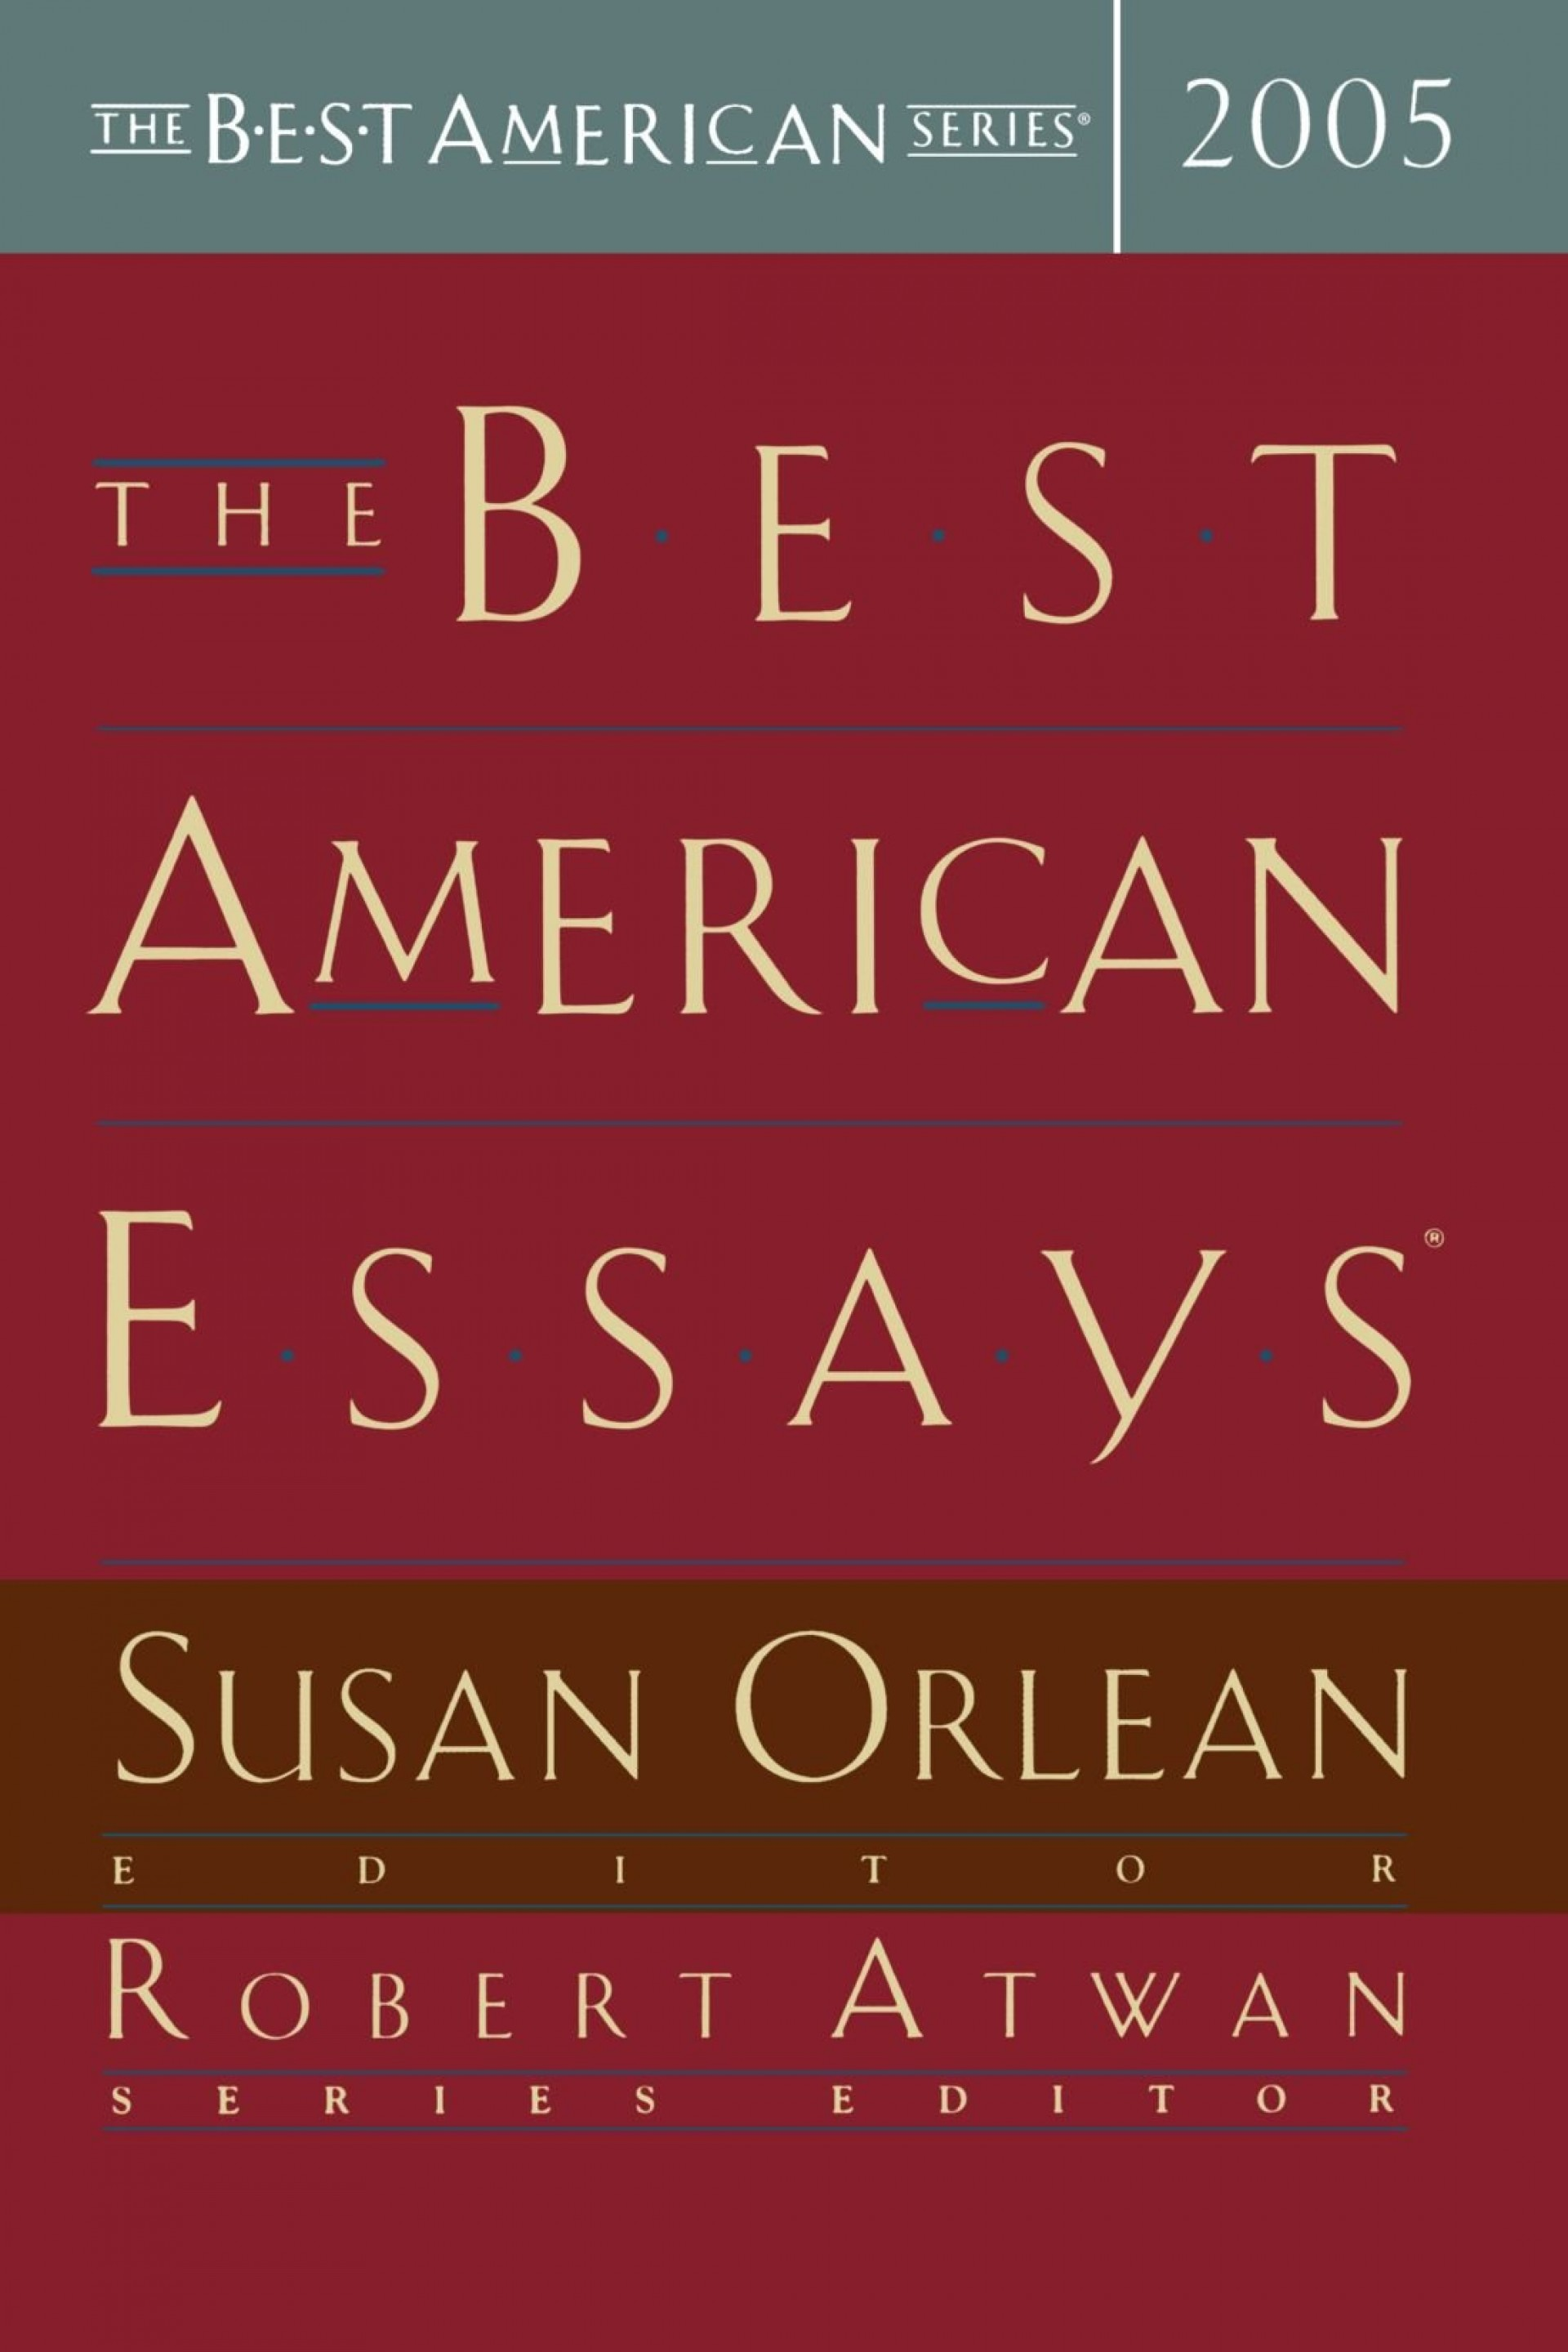 009 Essay Example 61eba7rjfxl The Best American Wonderful Essays Of Century Table Contents 2013 Pdf Download 1920